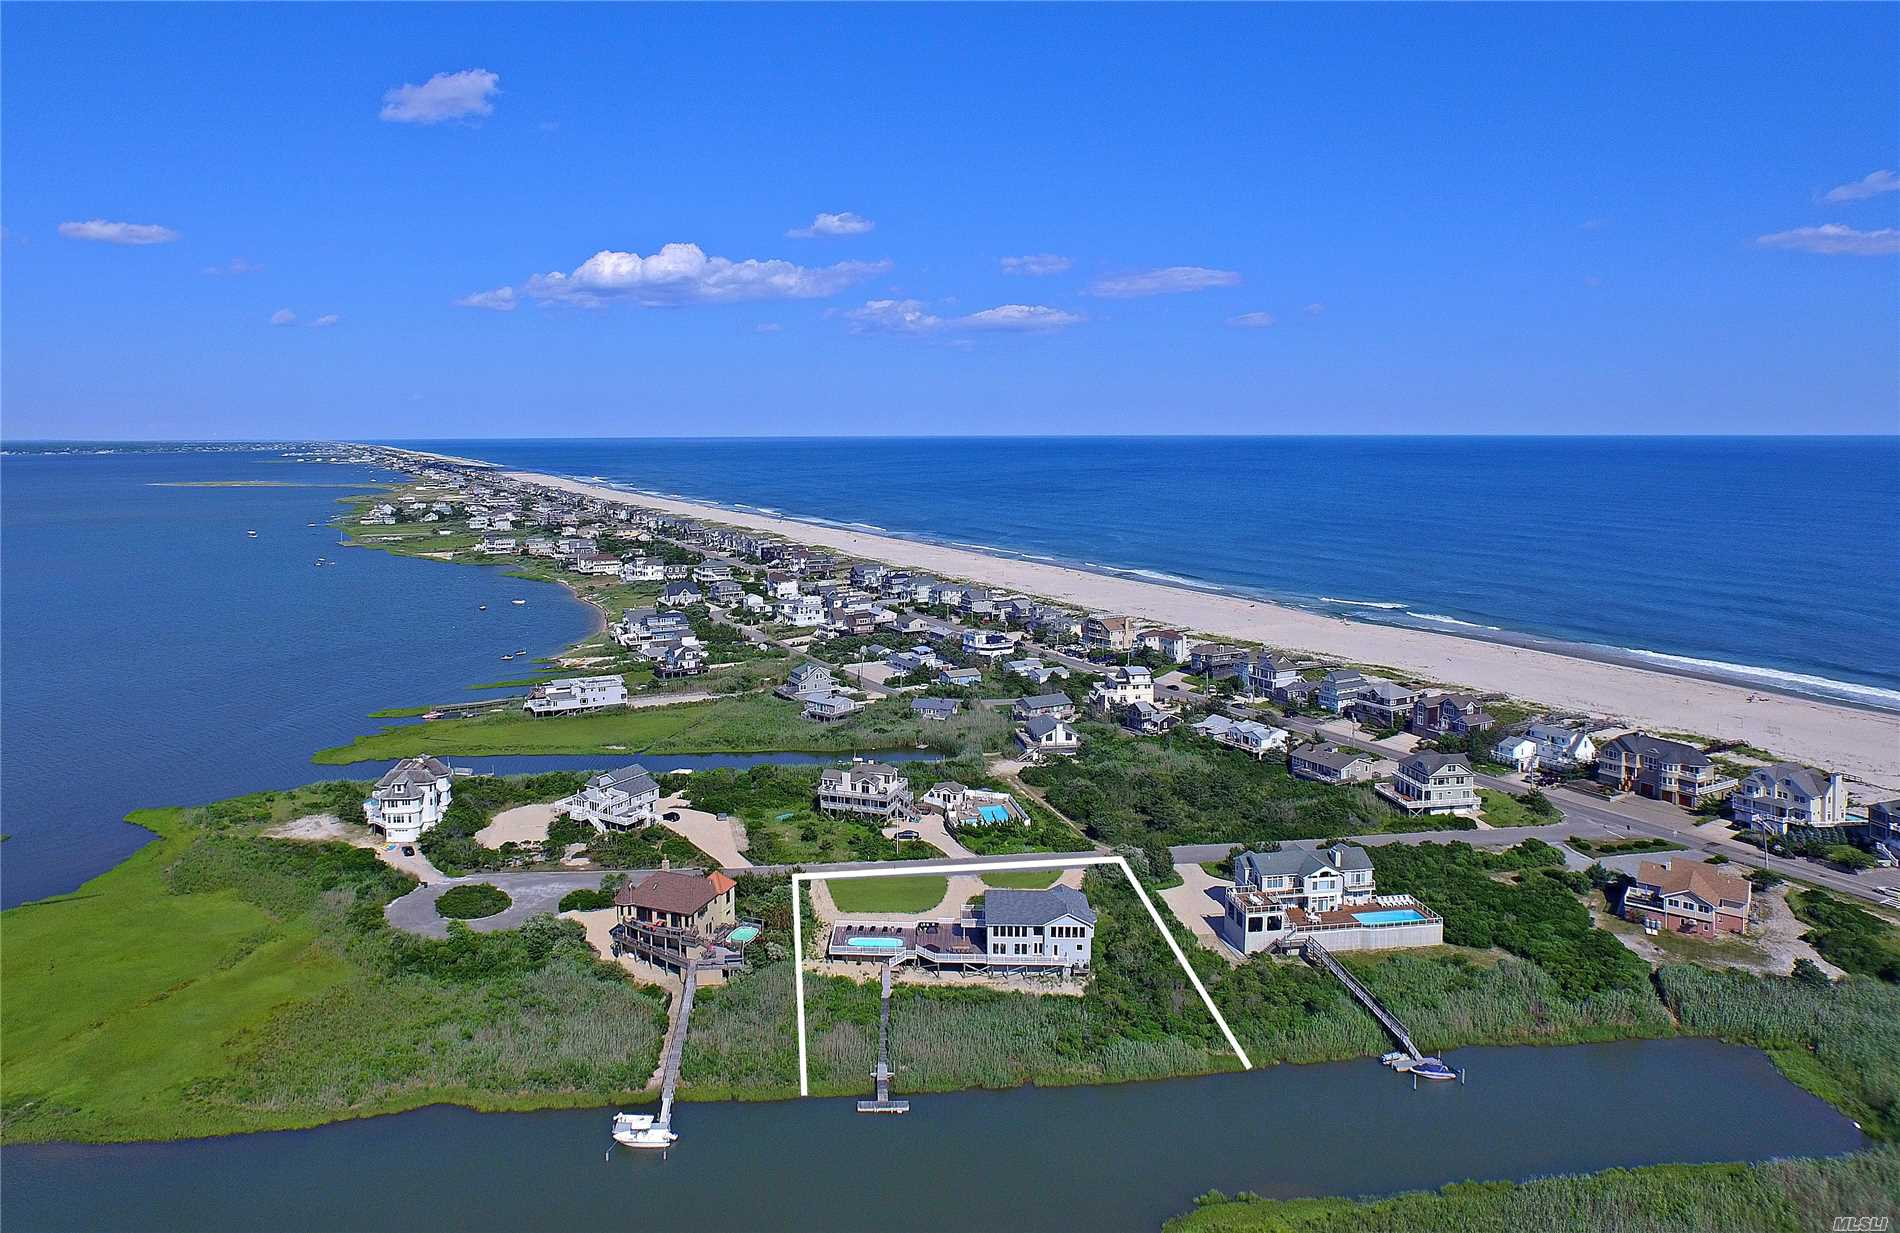 1.1 Acres Post Modern Bayfront. Great Room, 4 Bed & 3 Bath. 2nd Floor W Gourmet Kit, Dining Area, Master Bedroom Wi Bath & Balcony. Expansive Mahogany Decking, Covered Outdoor Kitchen, Gunite Pool, Canal Front Boat Dock, Rolling Lawns, & Access To Ocean Beaches.